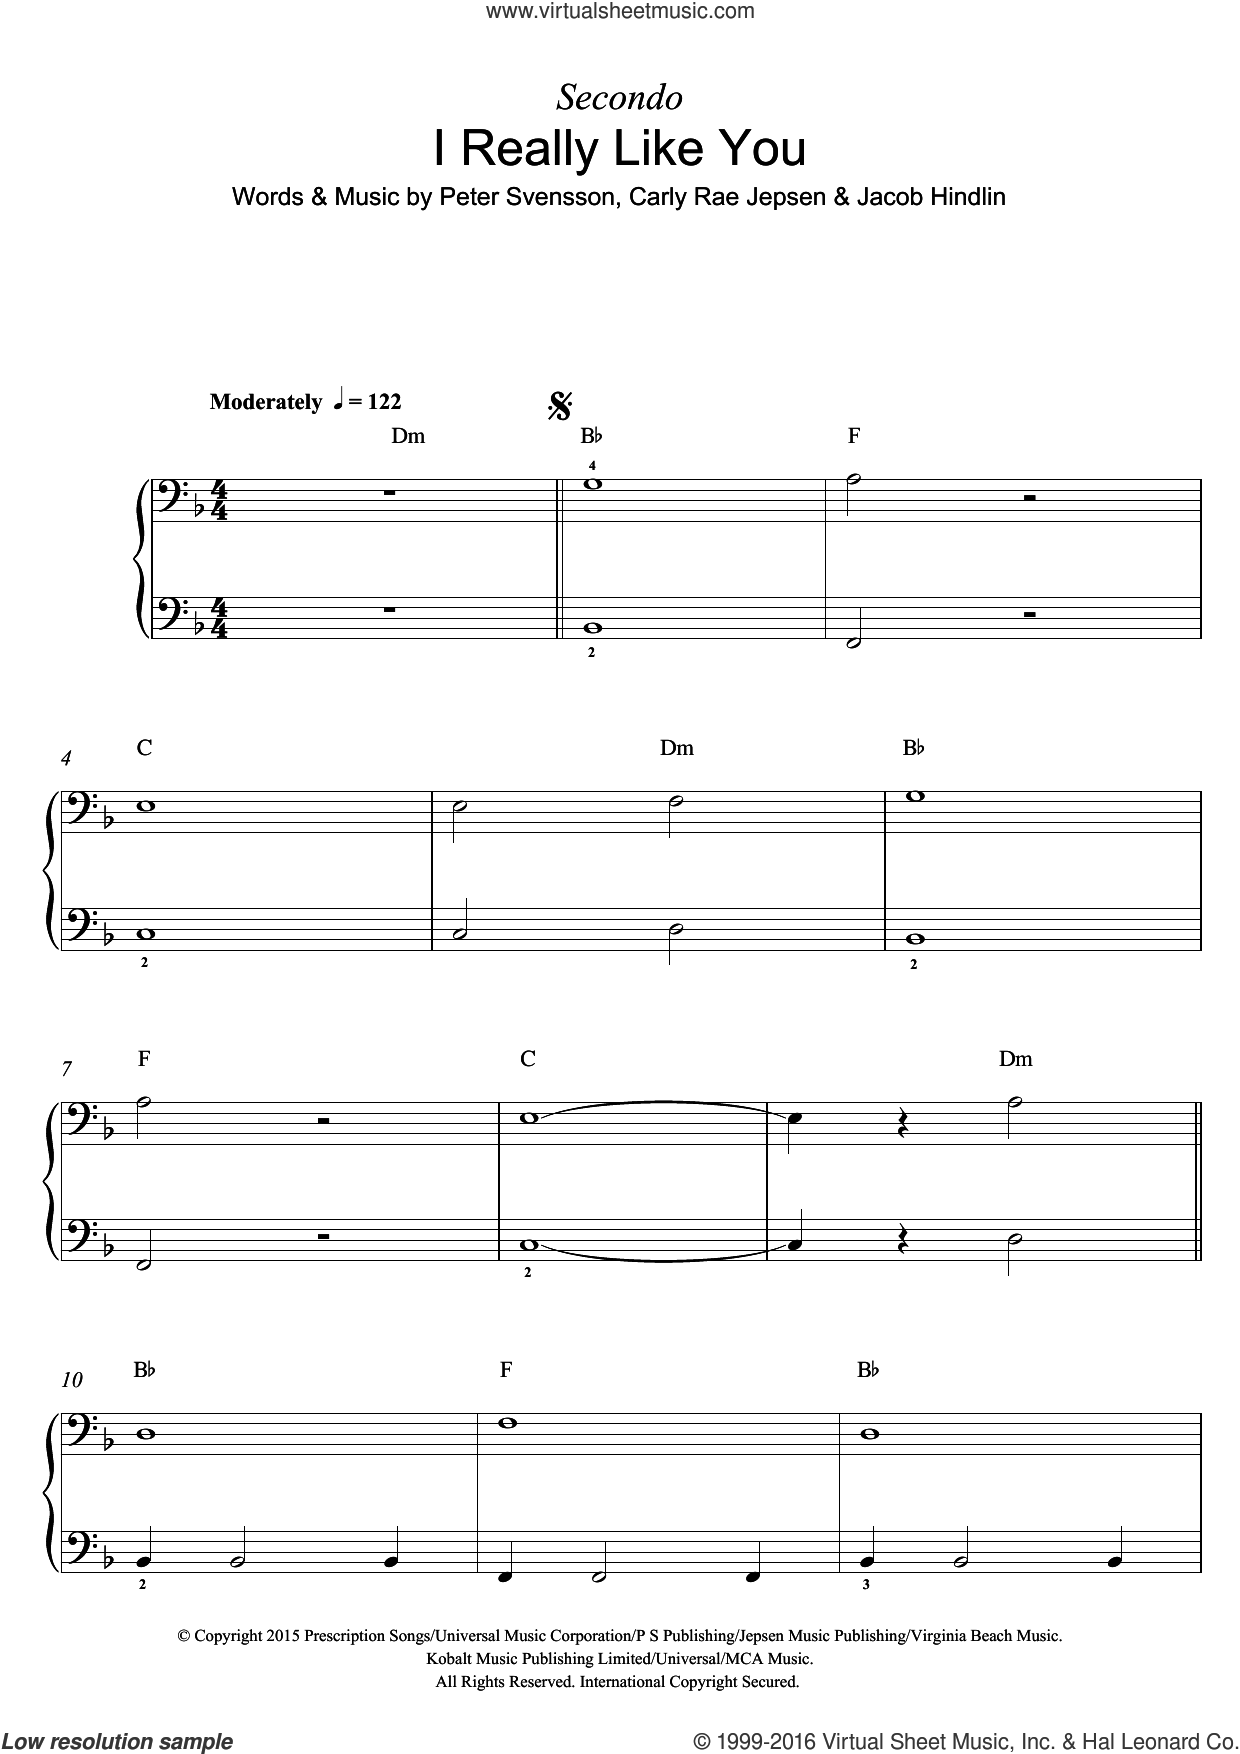 I Really Like You sheet music for piano solo by Carly Rae Jepsen, Jacob Hindlin and Peter Svensson, intermediate skill level